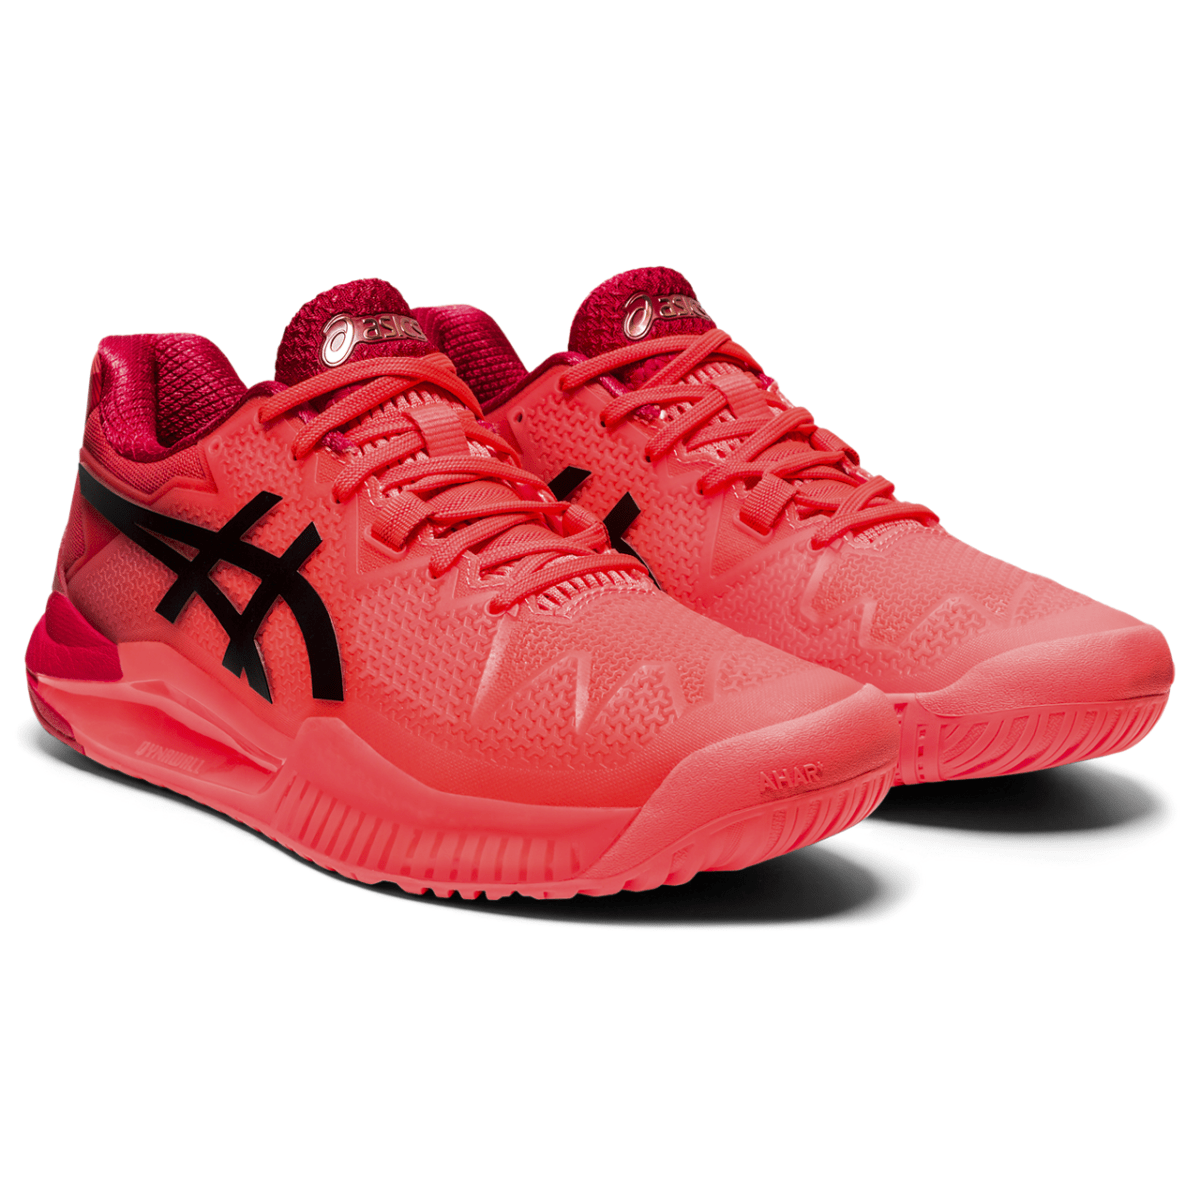 Naiste tennisejalats Asics Gel-Resolution 8 Tokyo W 2021 (Sunrise Red/Eclipse Black)